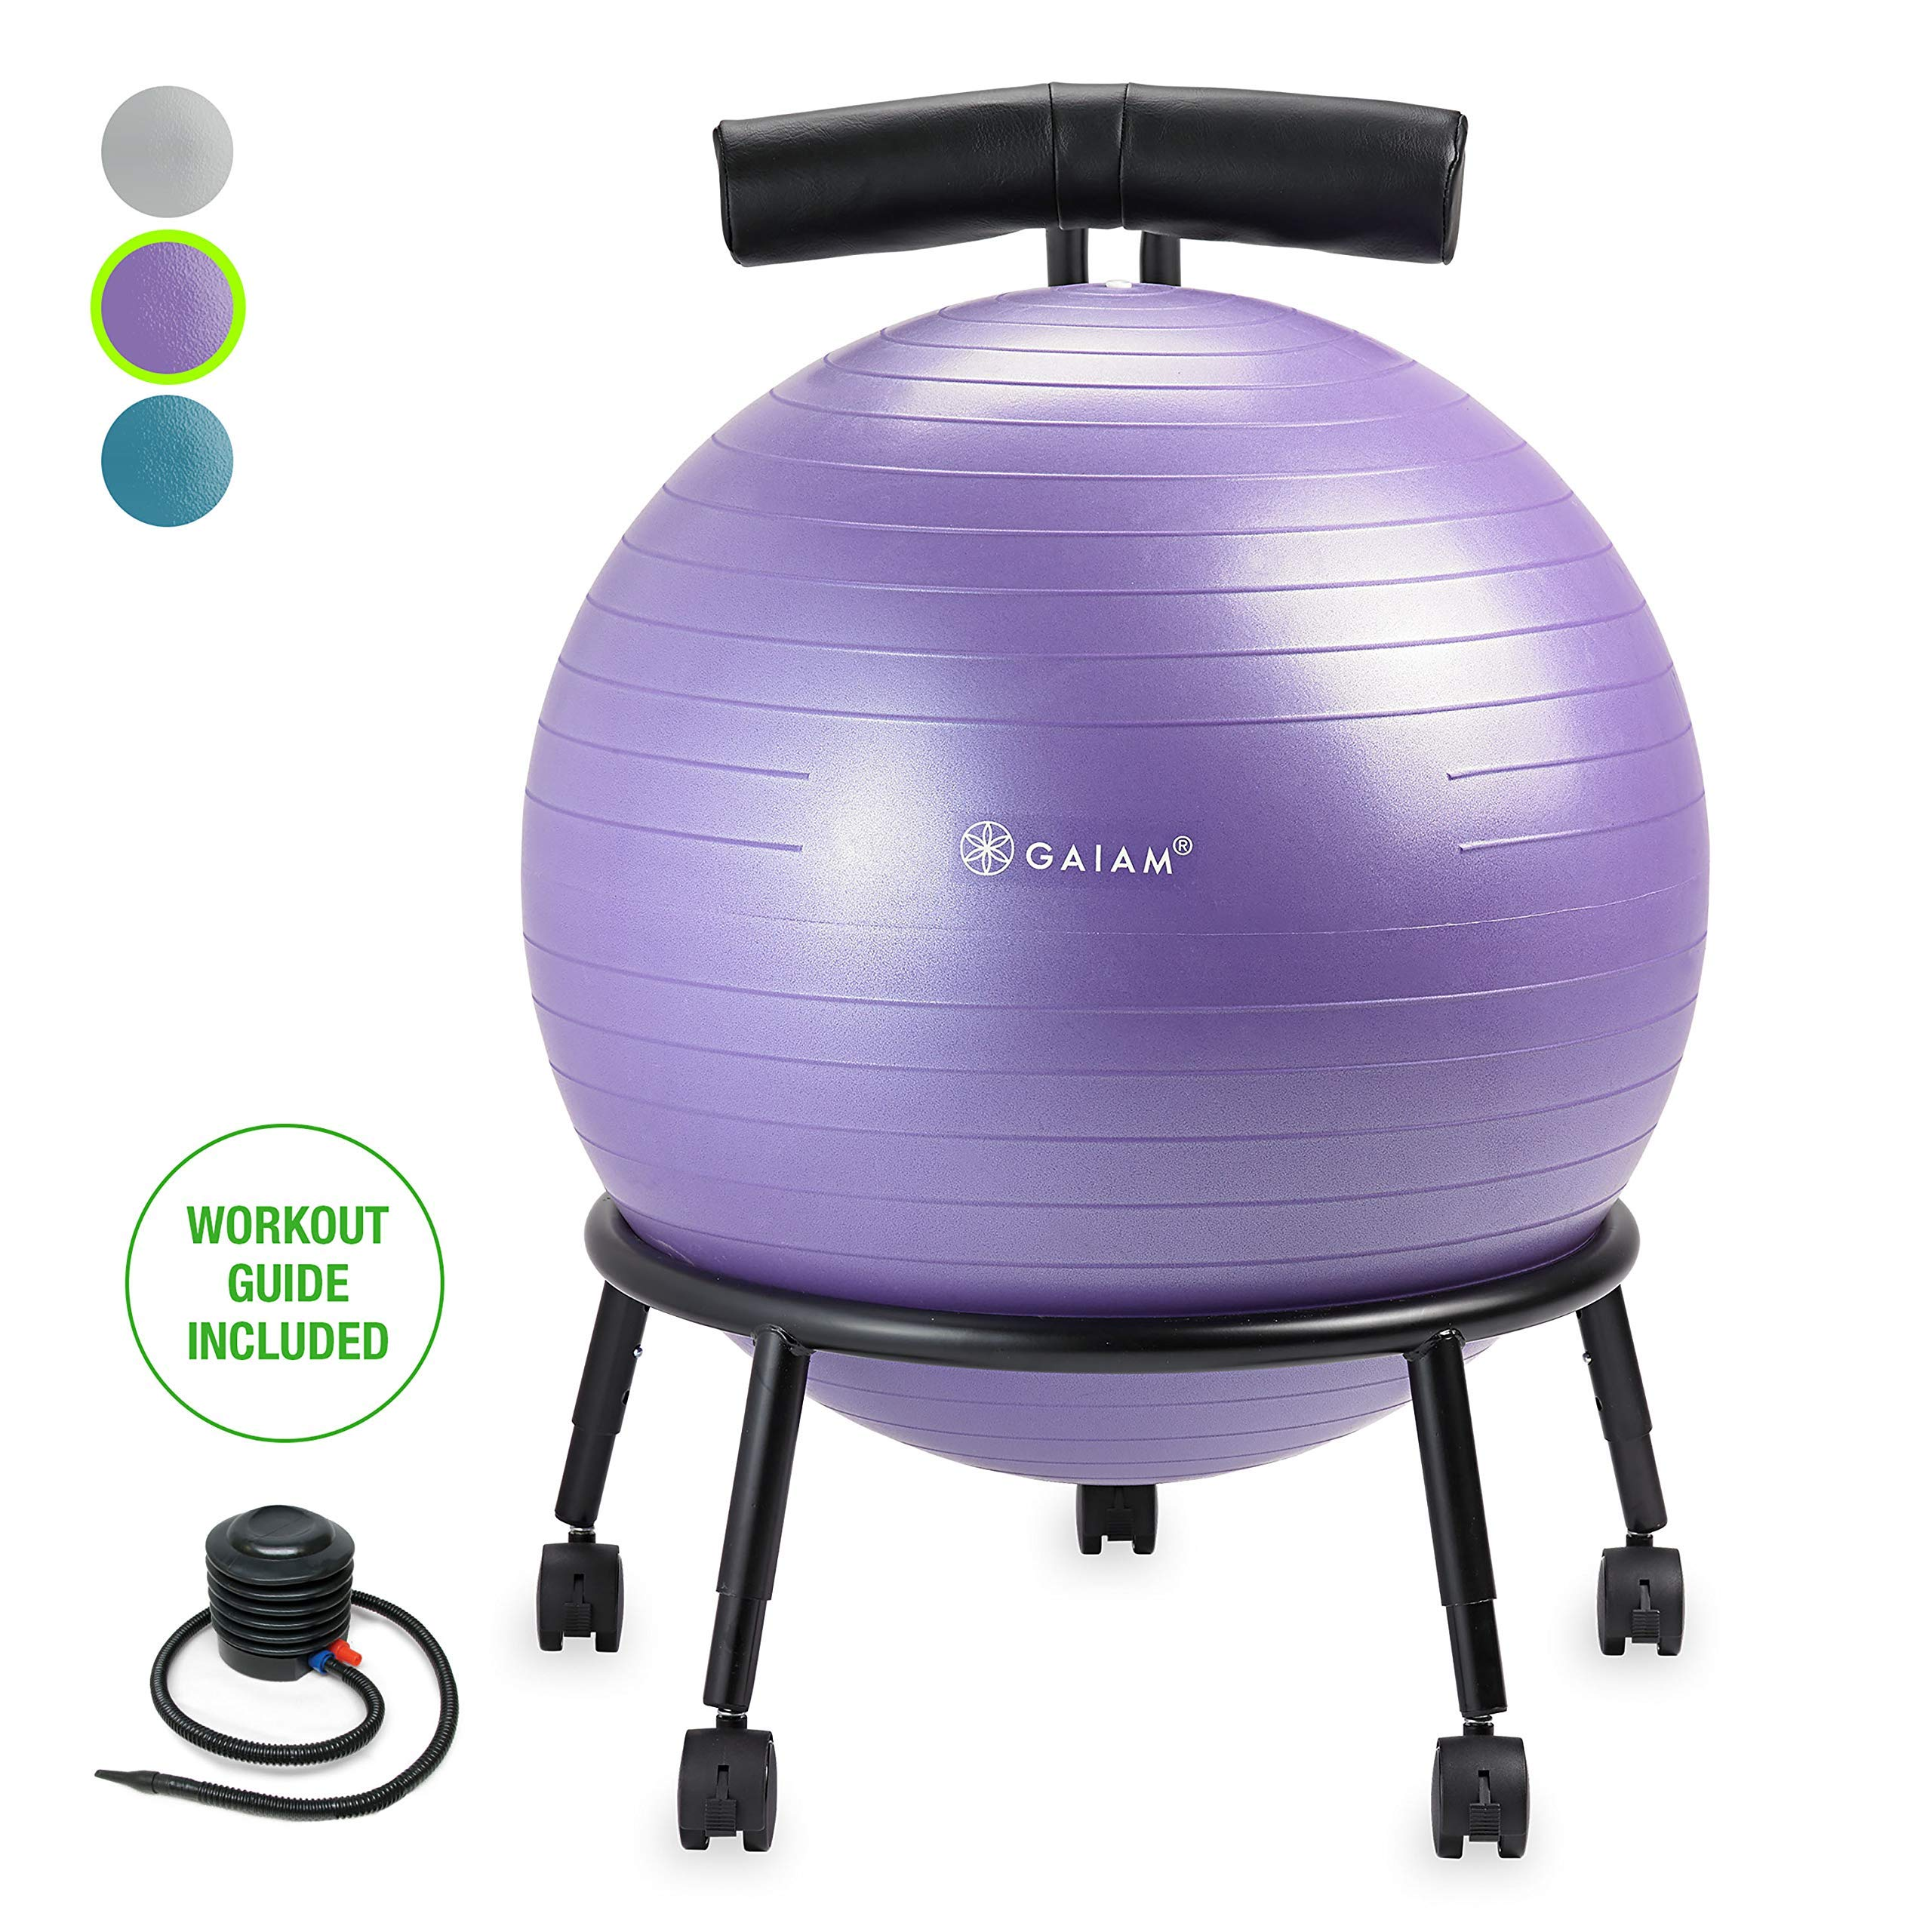 Gaiam Custom-Fit Balance Ball Chair - Exercise Stability Ball Adjustable Desk Chair for Home or Office with 55cm Yoga Ball, Air Pump, Exercise Guide and Satisfaction Guarantee, Purple (Renewed) by Gaiam